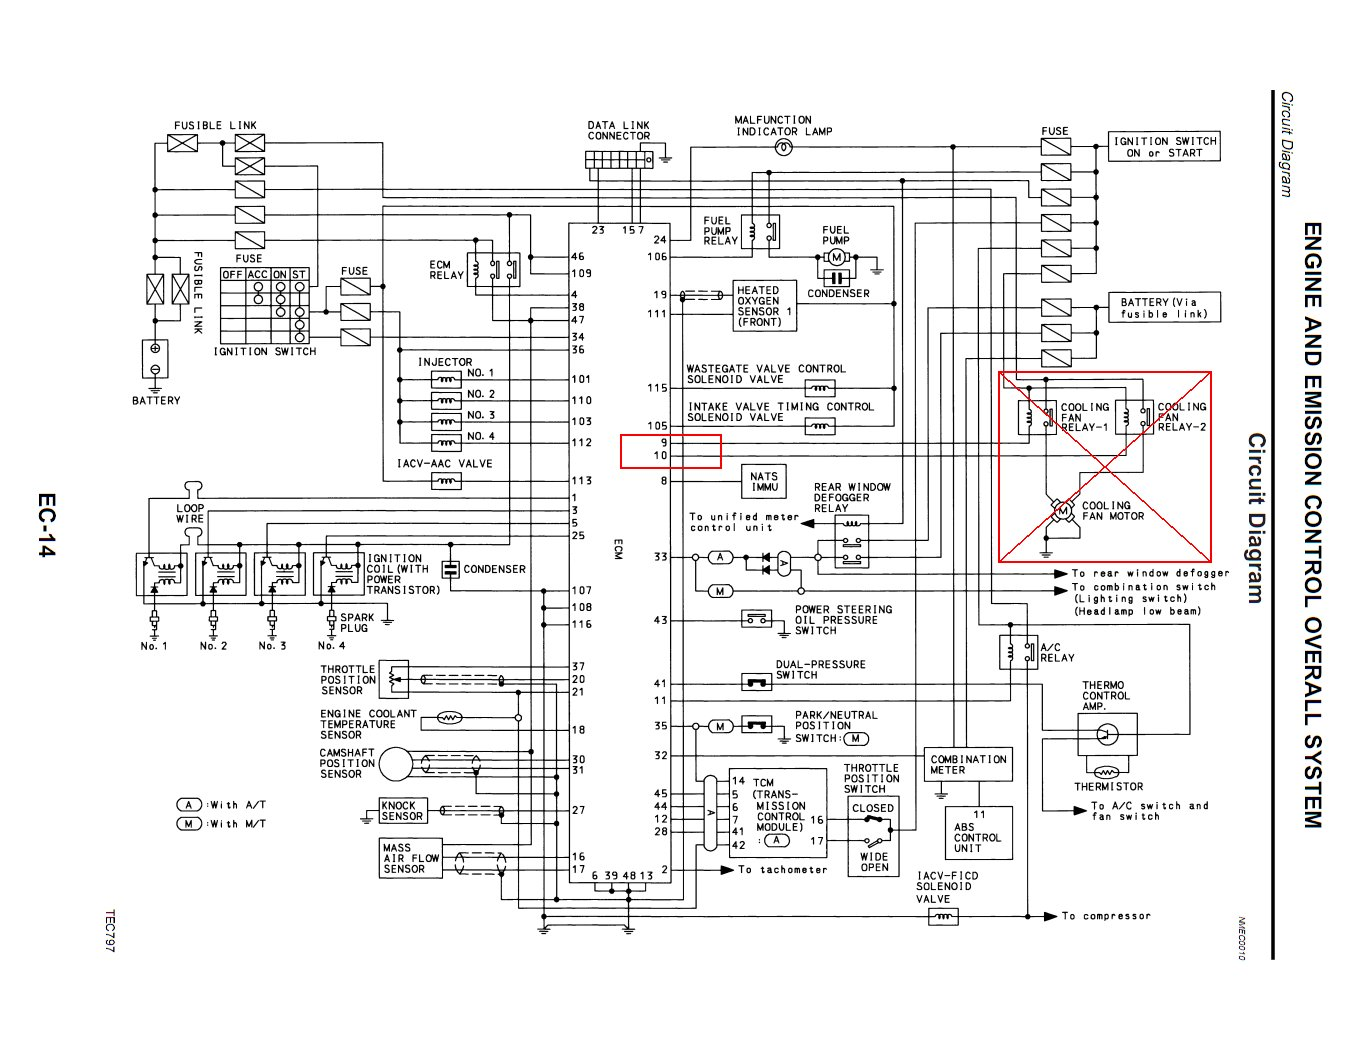 s15 ecu fan 02 100 [ 180sx wiring diagram ] 180sx 2jzgte swap wiring harness sr20 wiring diagram at honlapkeszites.co